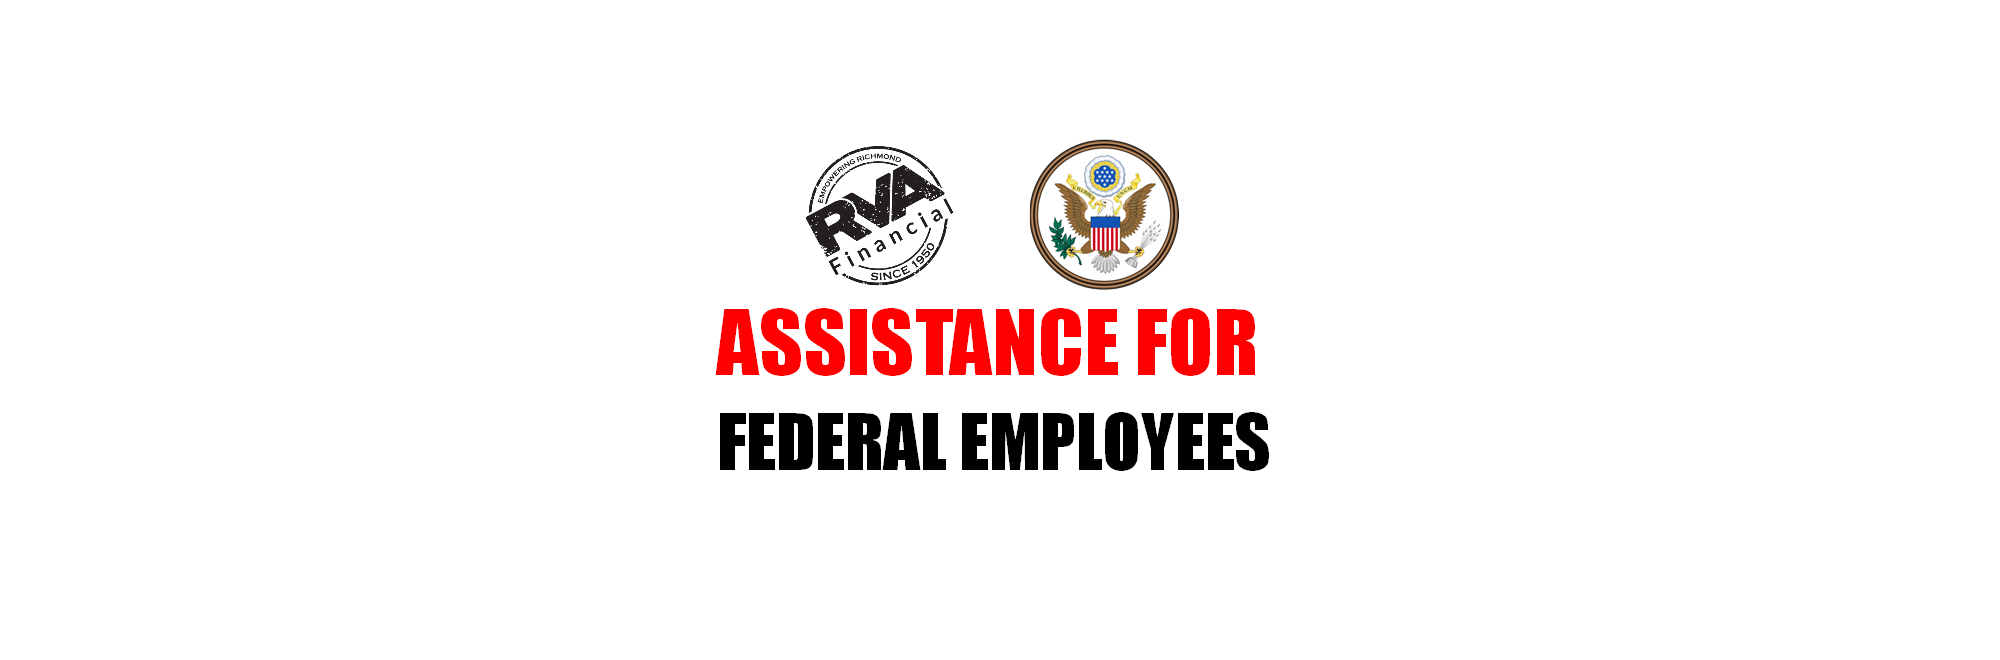 Click here if you are a federal employee who is impacted by the government shutdown